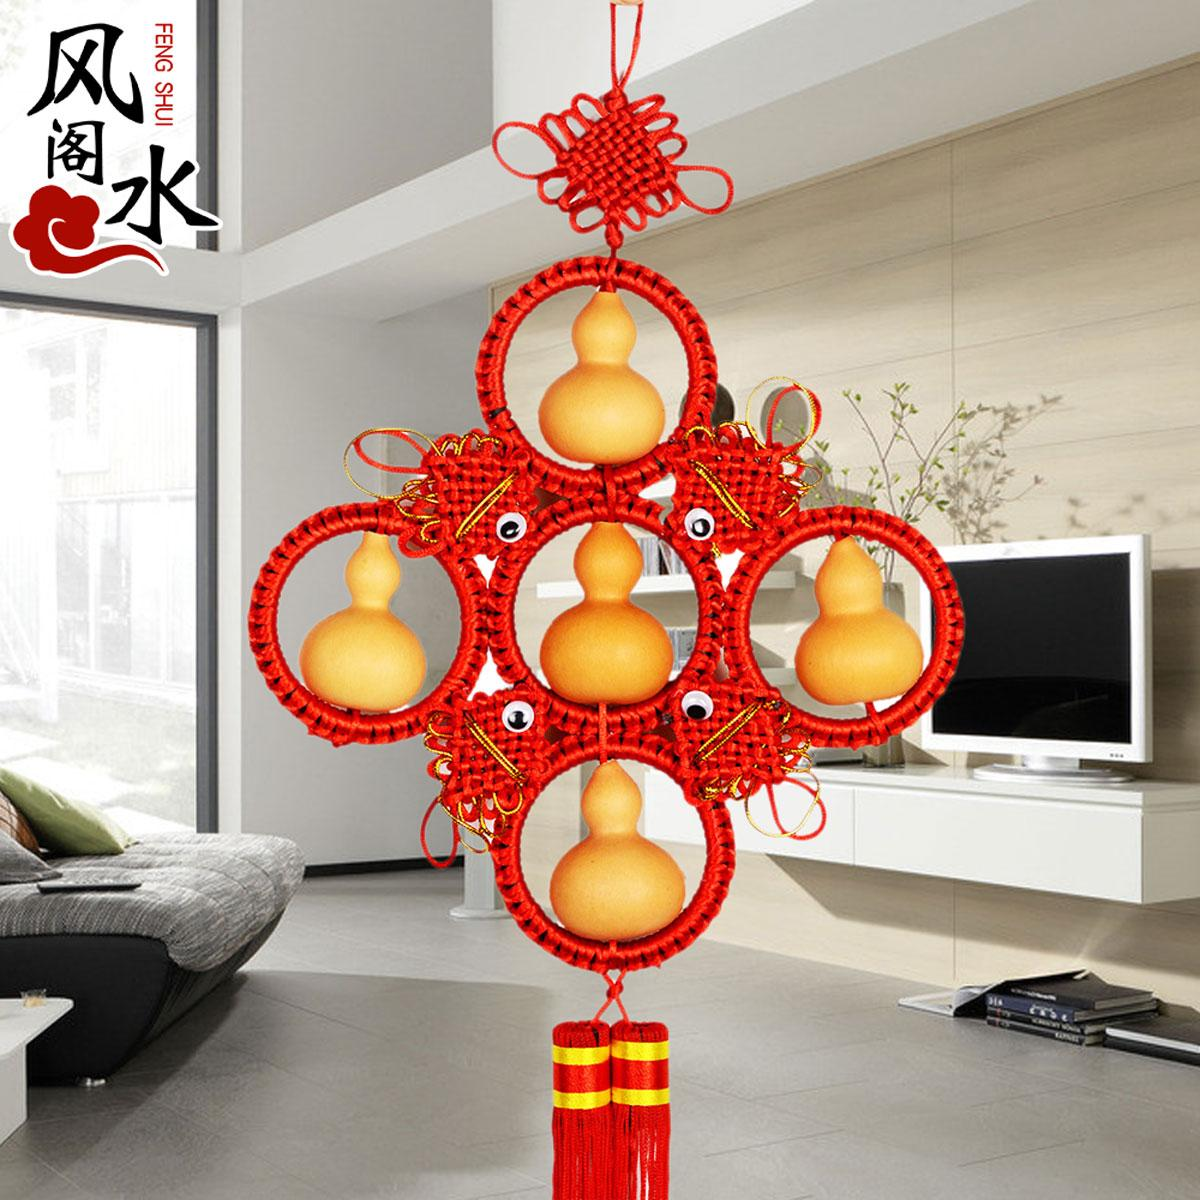 Fengshuige Five Blessings Gourd Chinese Knot Pendant Feng Shui Decoration Festive Wedding Gift By Taobao Collection.